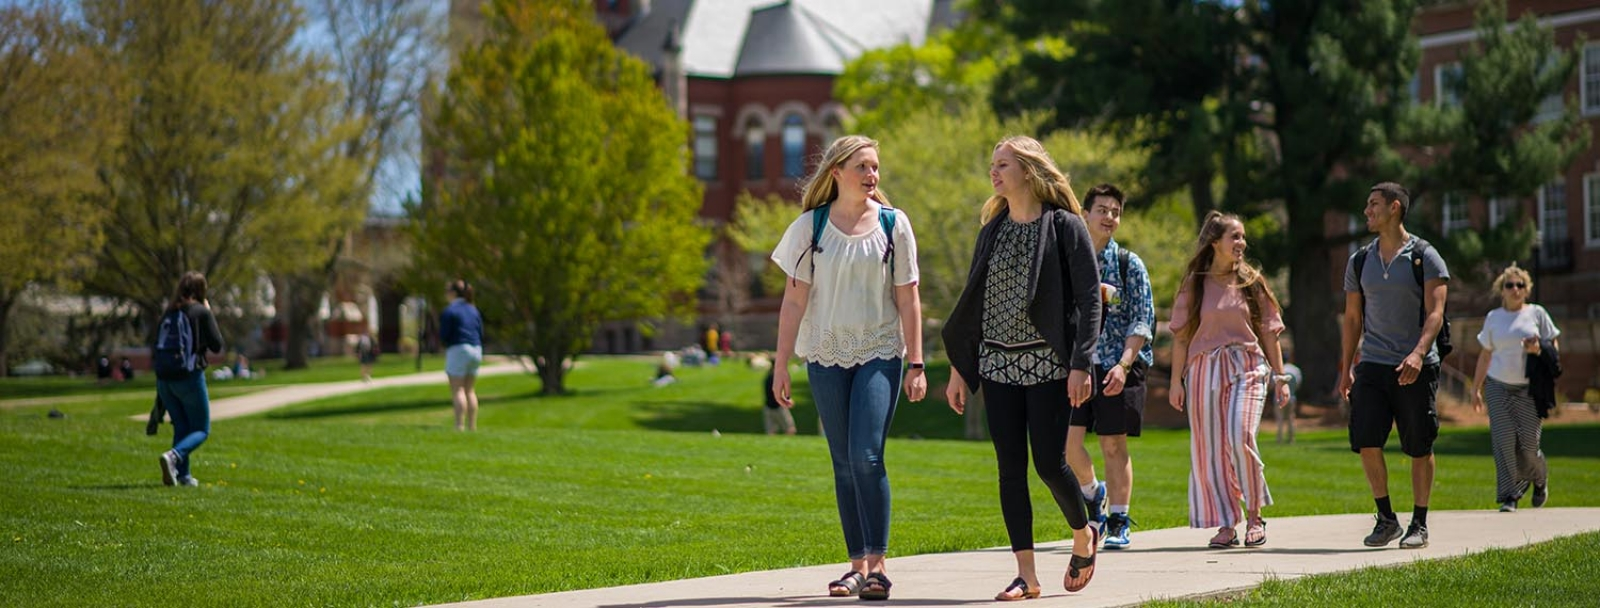 UNH students on campus